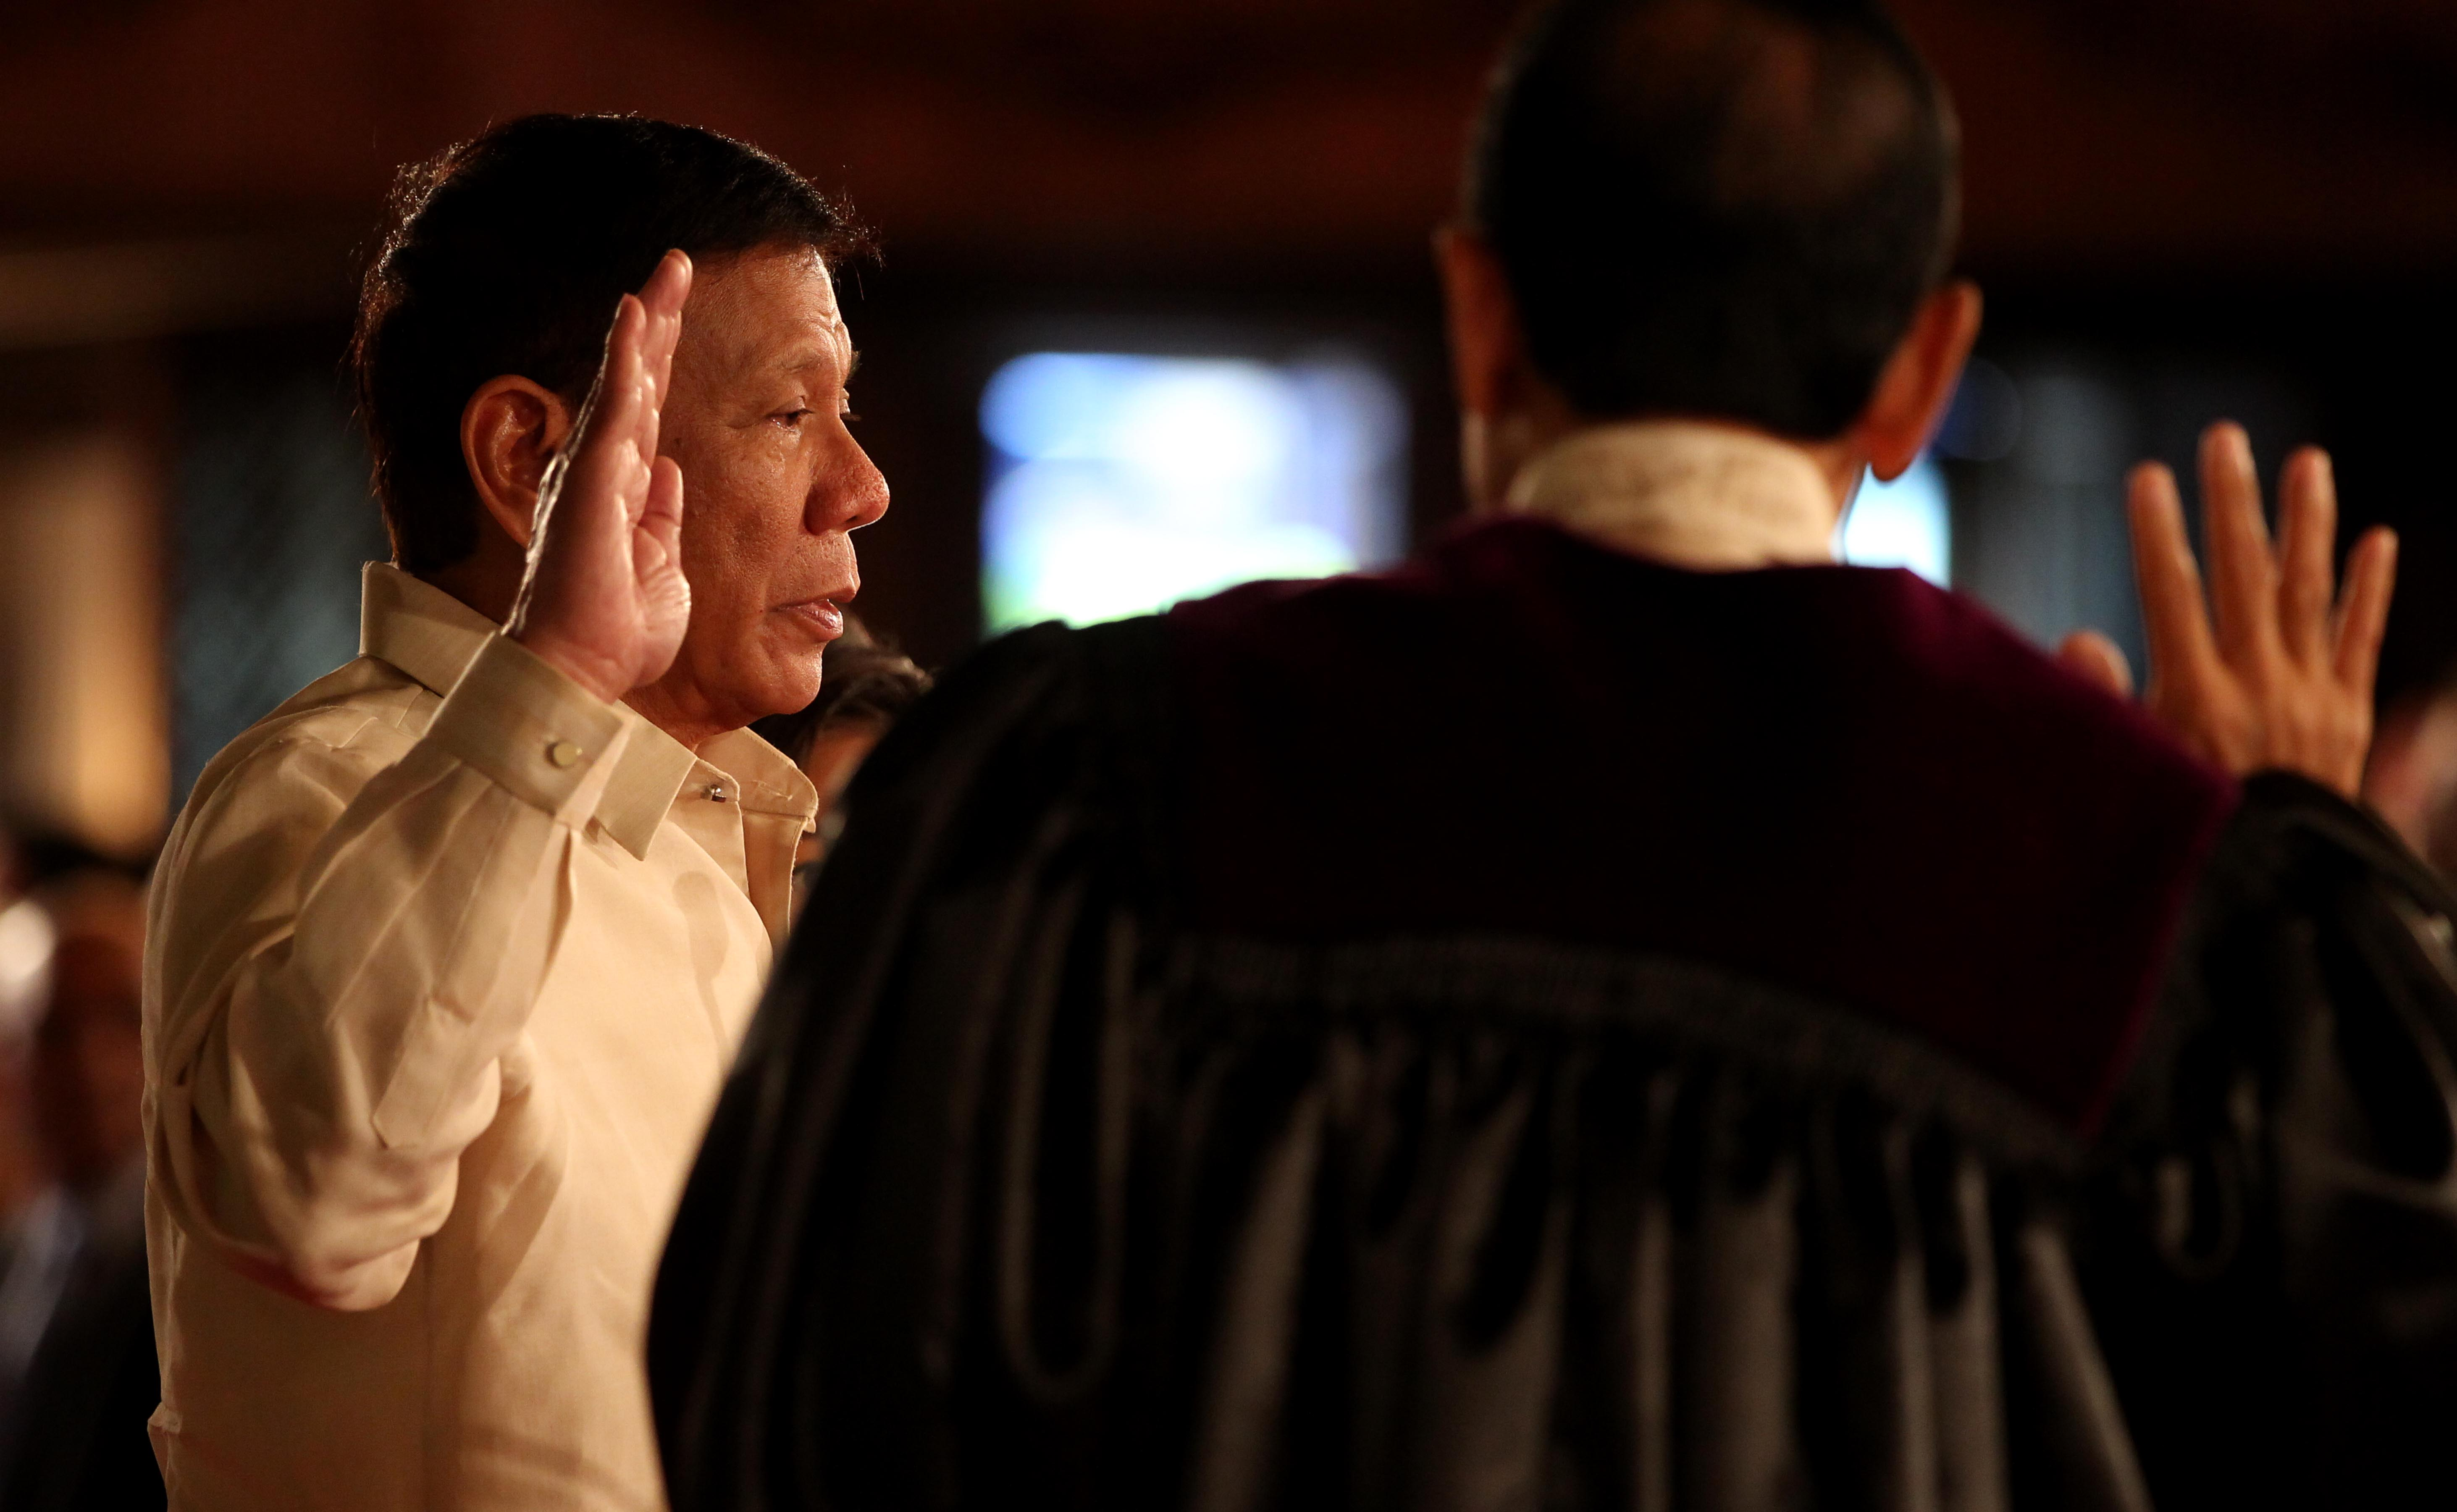 SWORN IN. Rodrigo Duterte takes his oath of office as the 16th President of the Republic of the Philippines on June 30, 2016.